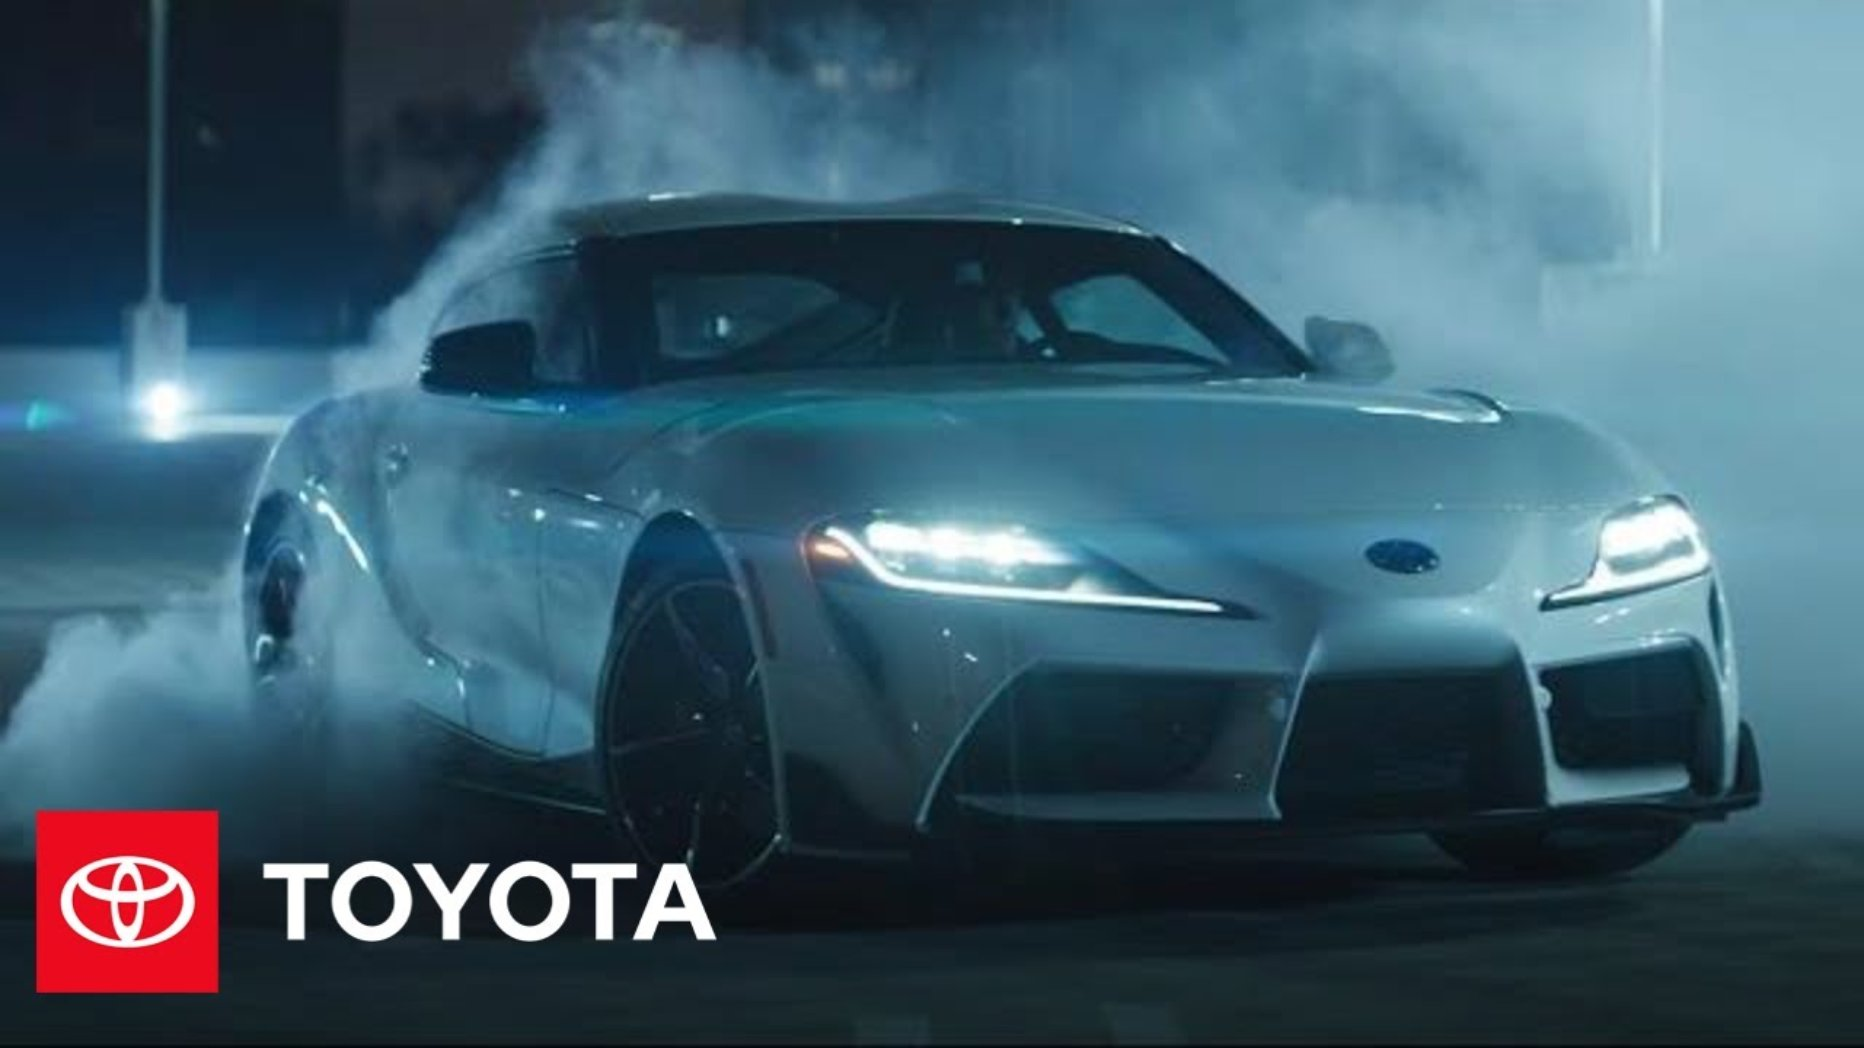 The New Toyota Supra Commercial Is Really Fun (Behind The Scenes Included)